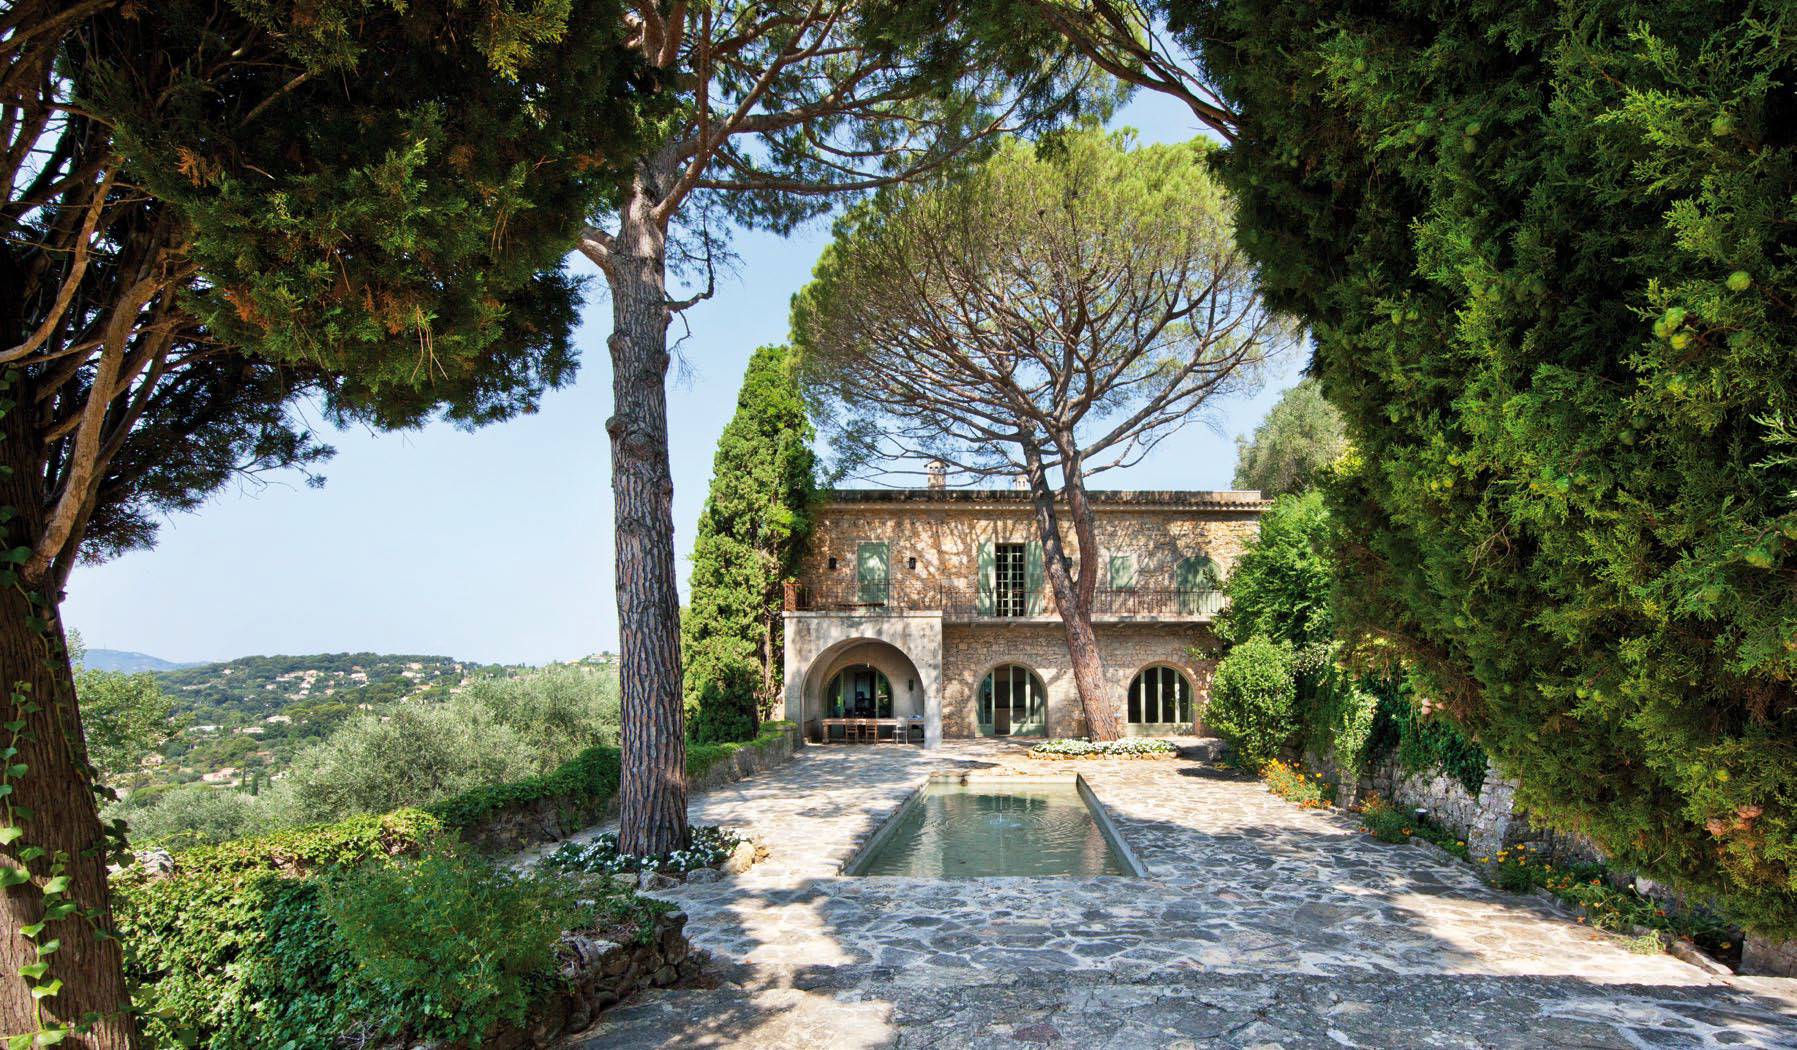 Picasso estate sold to scepter chairman rayo withanage for Le jardin mougins